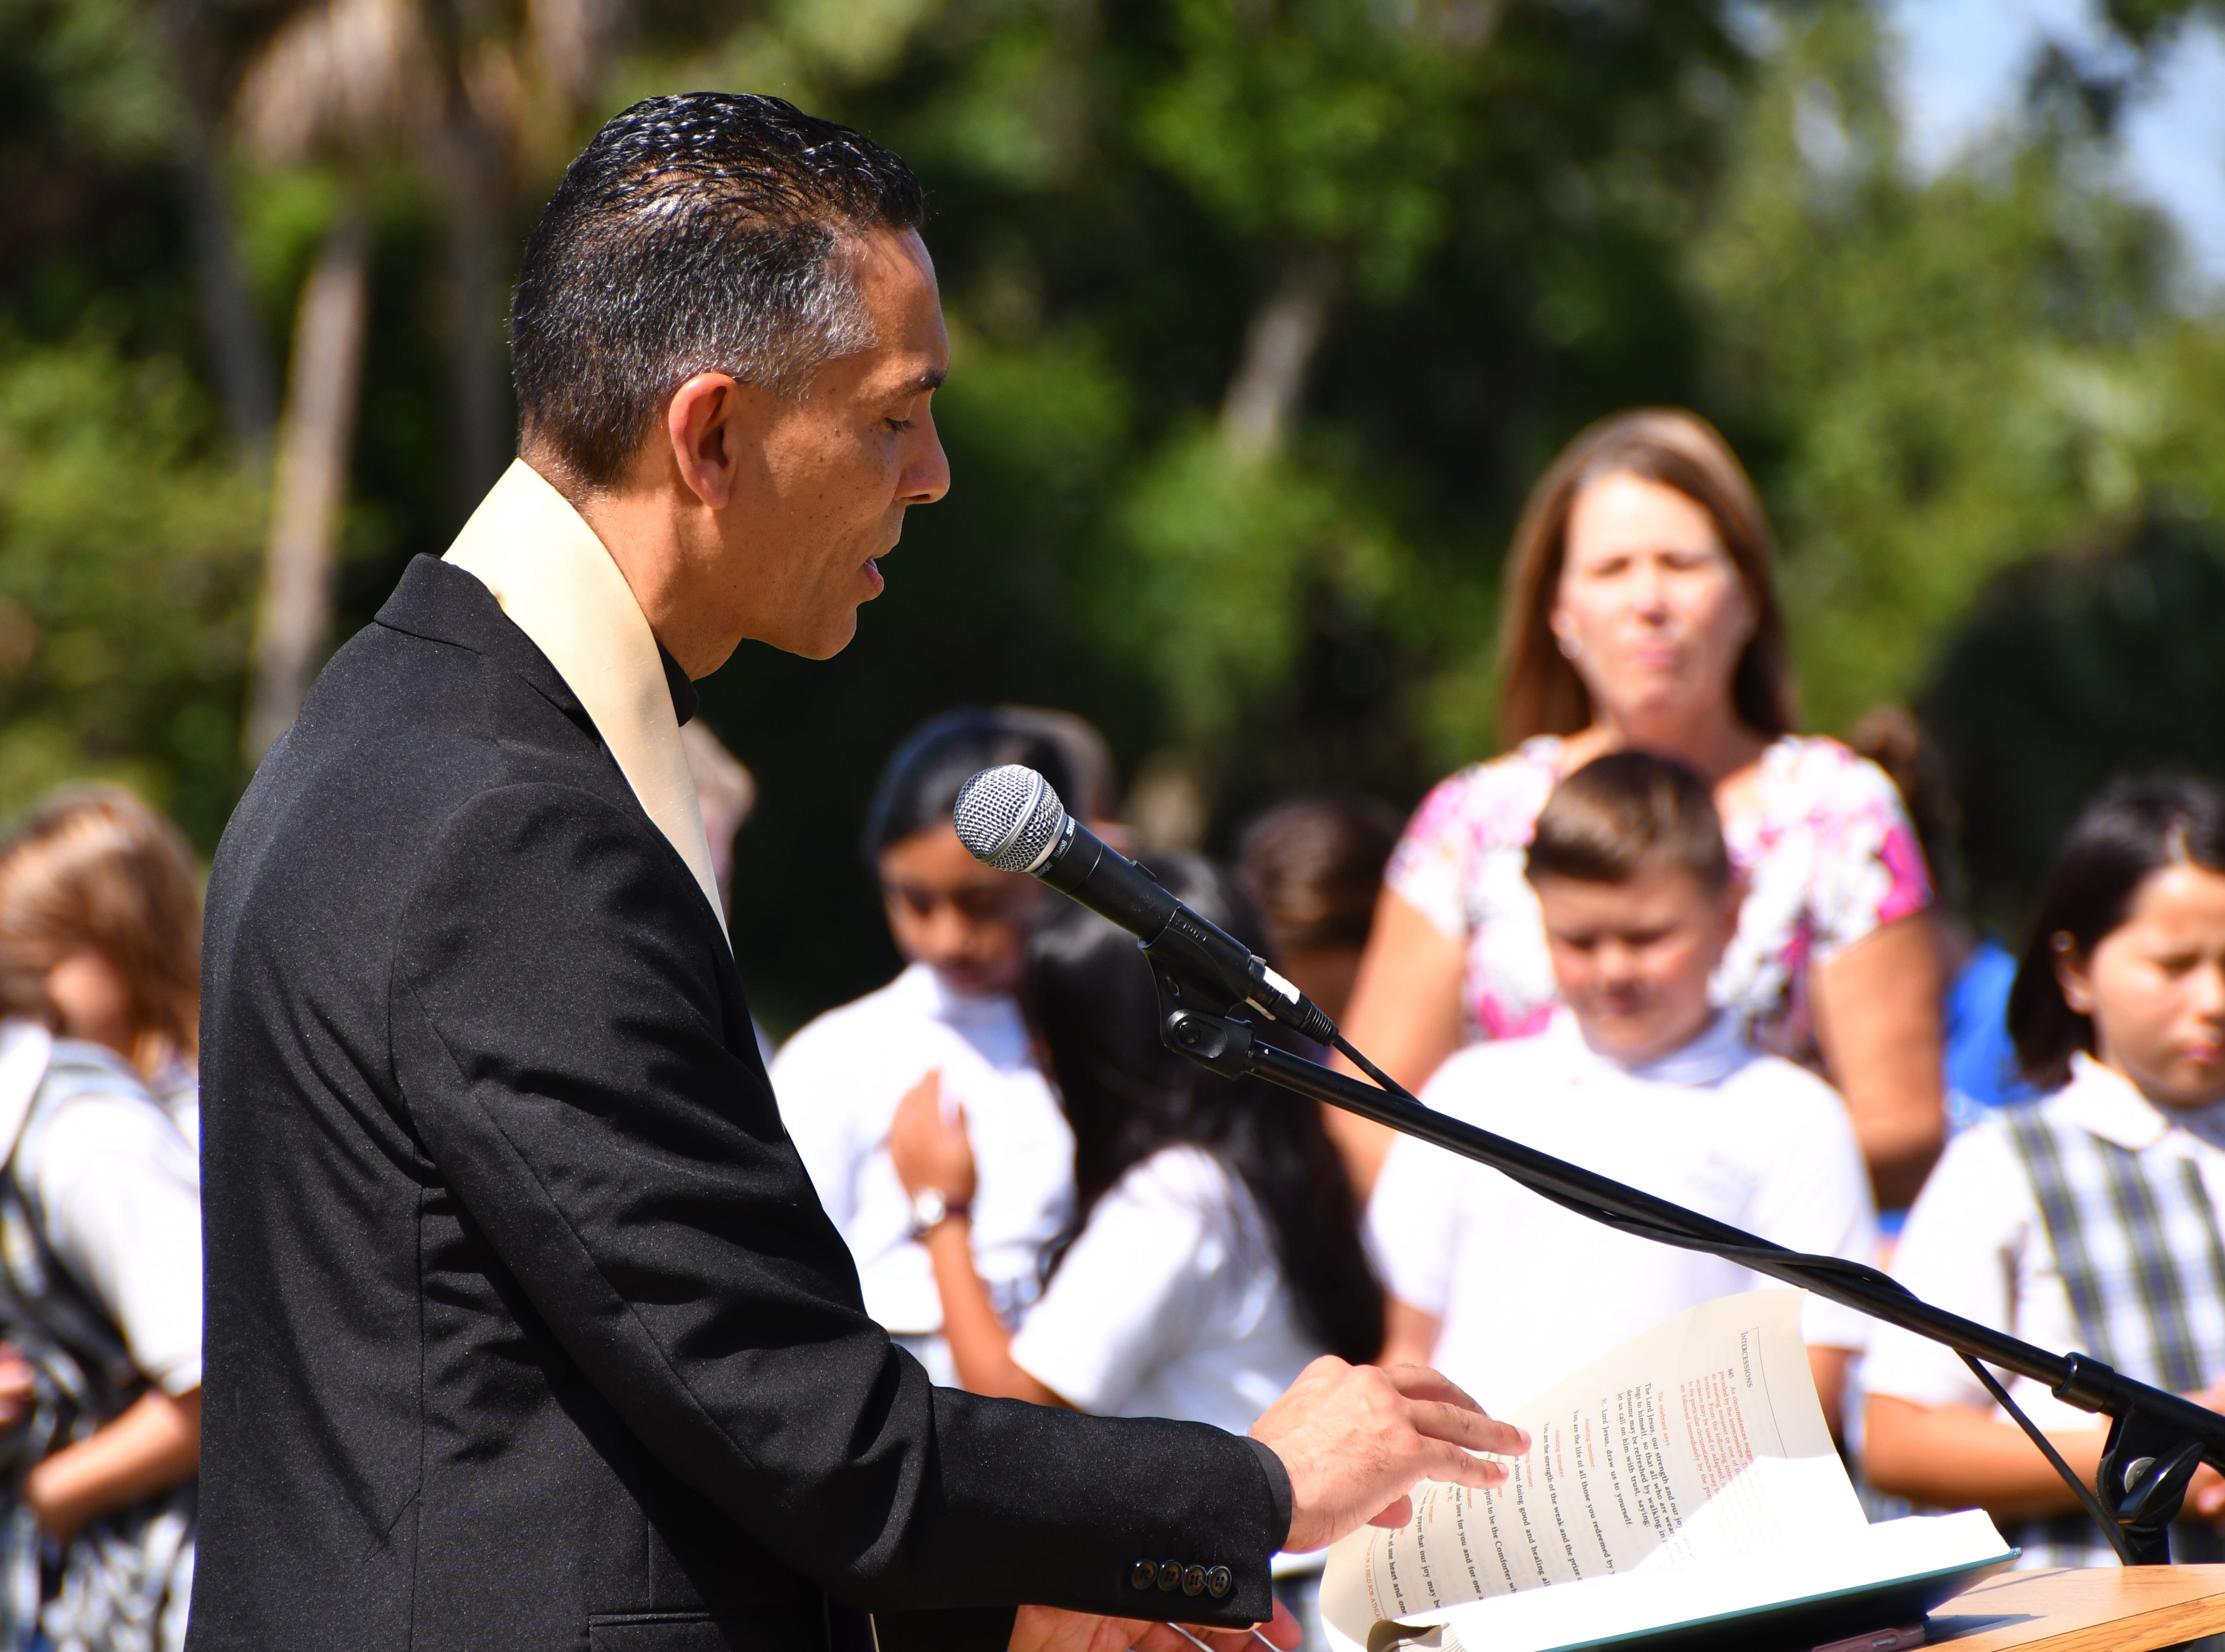 Very Rev. Ivan Olmosaid a prayer and spoke to the group before blessing the structures. St. Mary Catholic School in Rockledge hosted a dedication ceremony for its newly constructed shade structures Wednesday morning made possible by a grant from the American Academy of Dermatology's Adopt-A-Shade program. Board-certified dermatologist, Francille MacFarland, MD, FAAD, provided a generous donation to the AAD, which completed the funding necessary to build the structure over the school's primary playground and picnic area. The shade will help protect more than 250 children and teachers daily from the sun's harmful ultraviolet rays. Other parishioners, families, doctors and school fund raisers helped cover the cost.